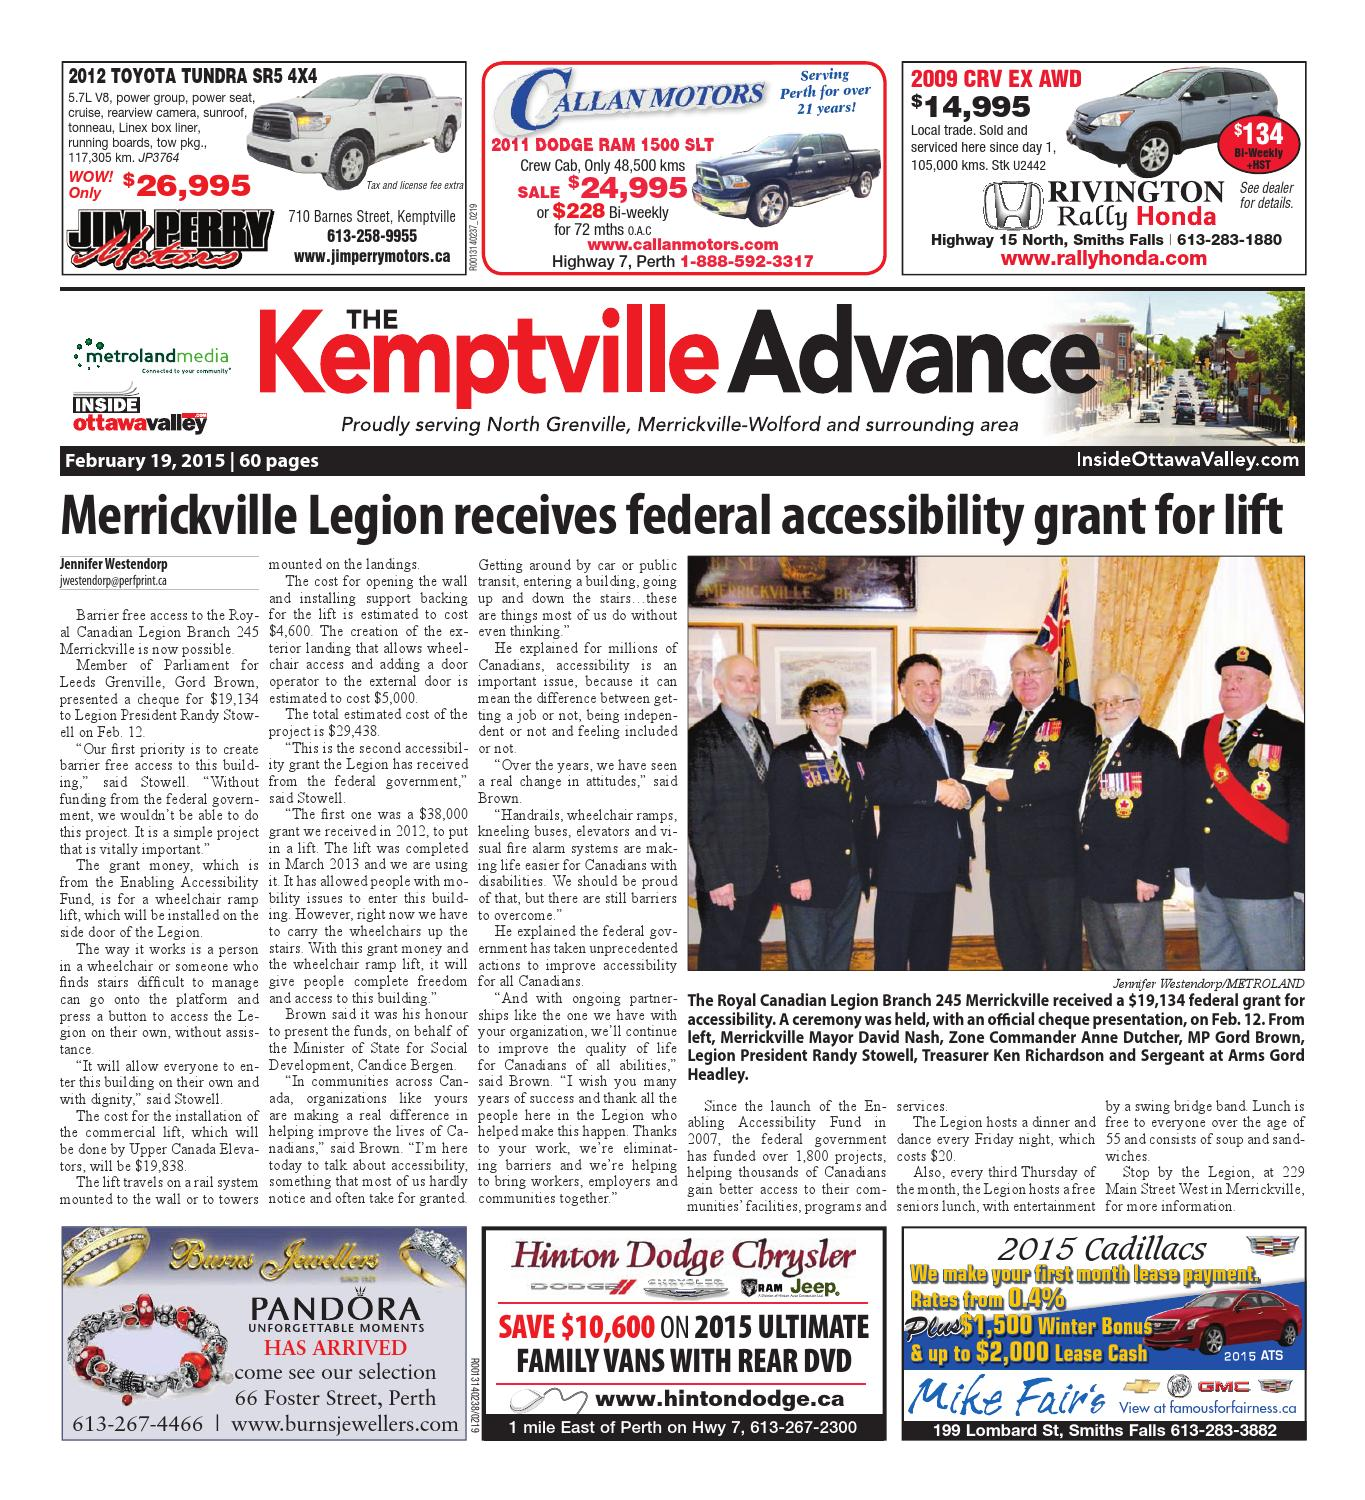 Kemptville021915 by Metroland East - Kemptville Advance - issuu 736194b0c